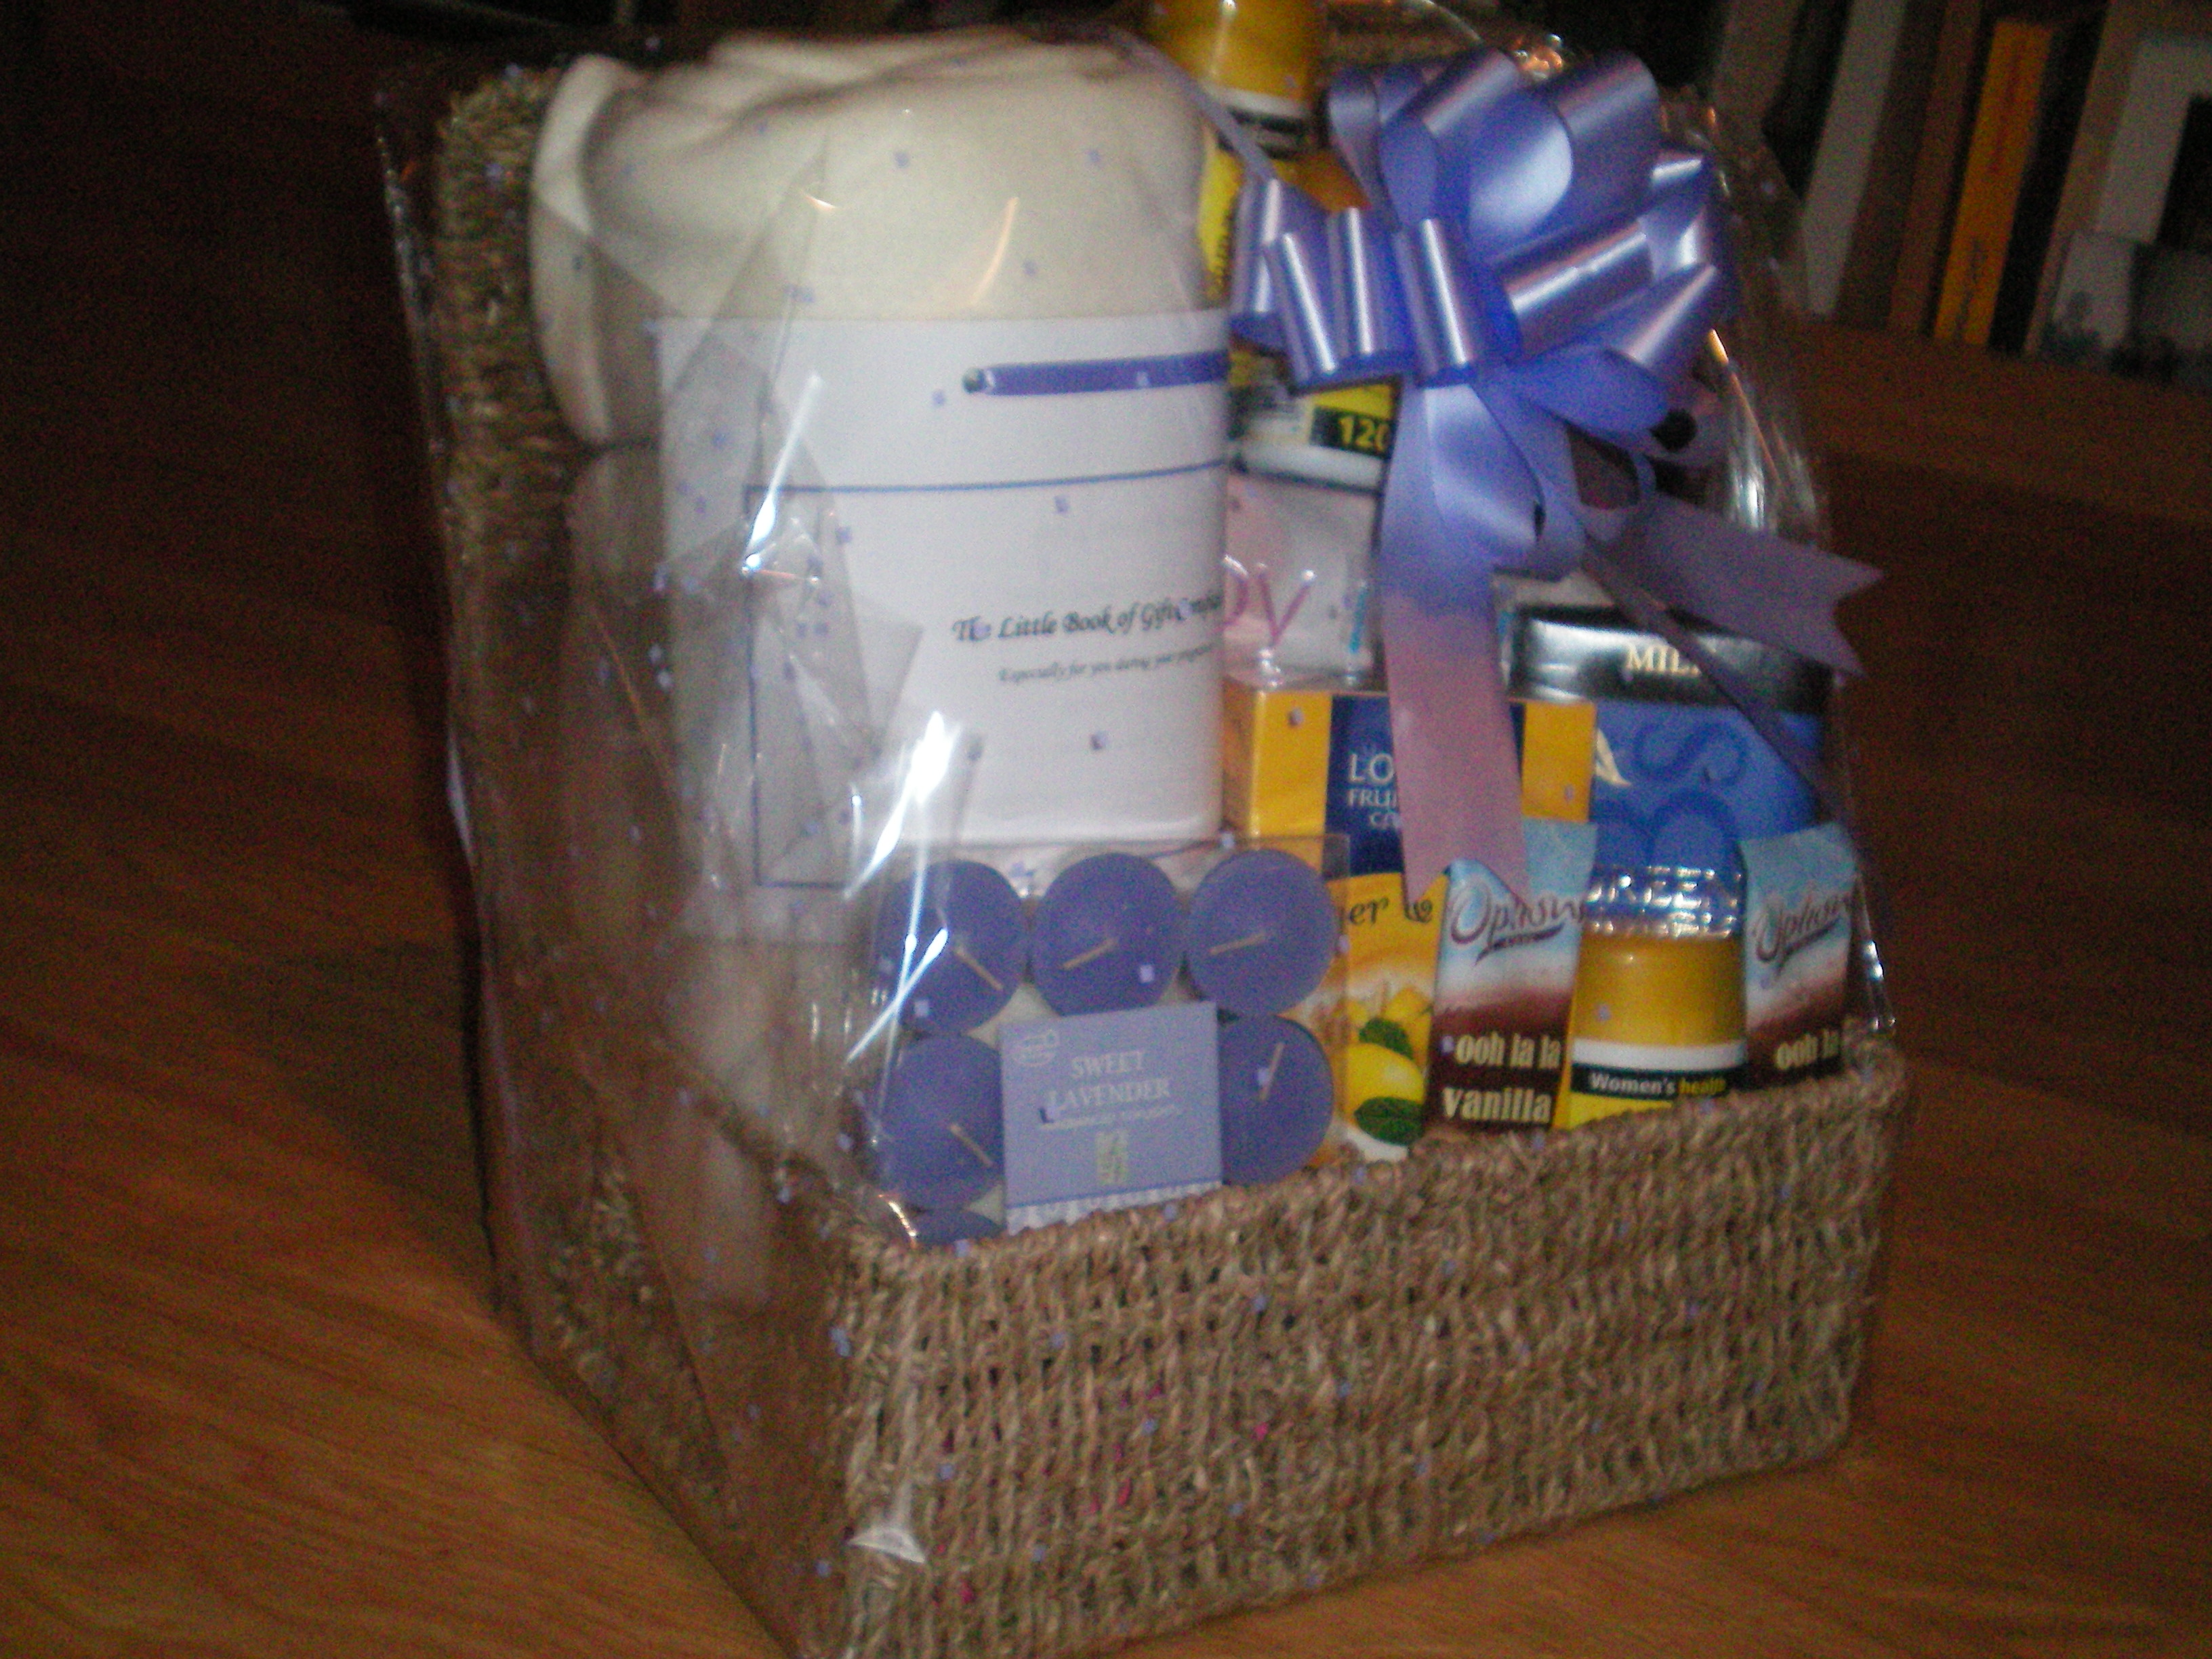 Medium Mum To Be Pamper Set 163 20 Pamper Hampers Belfast